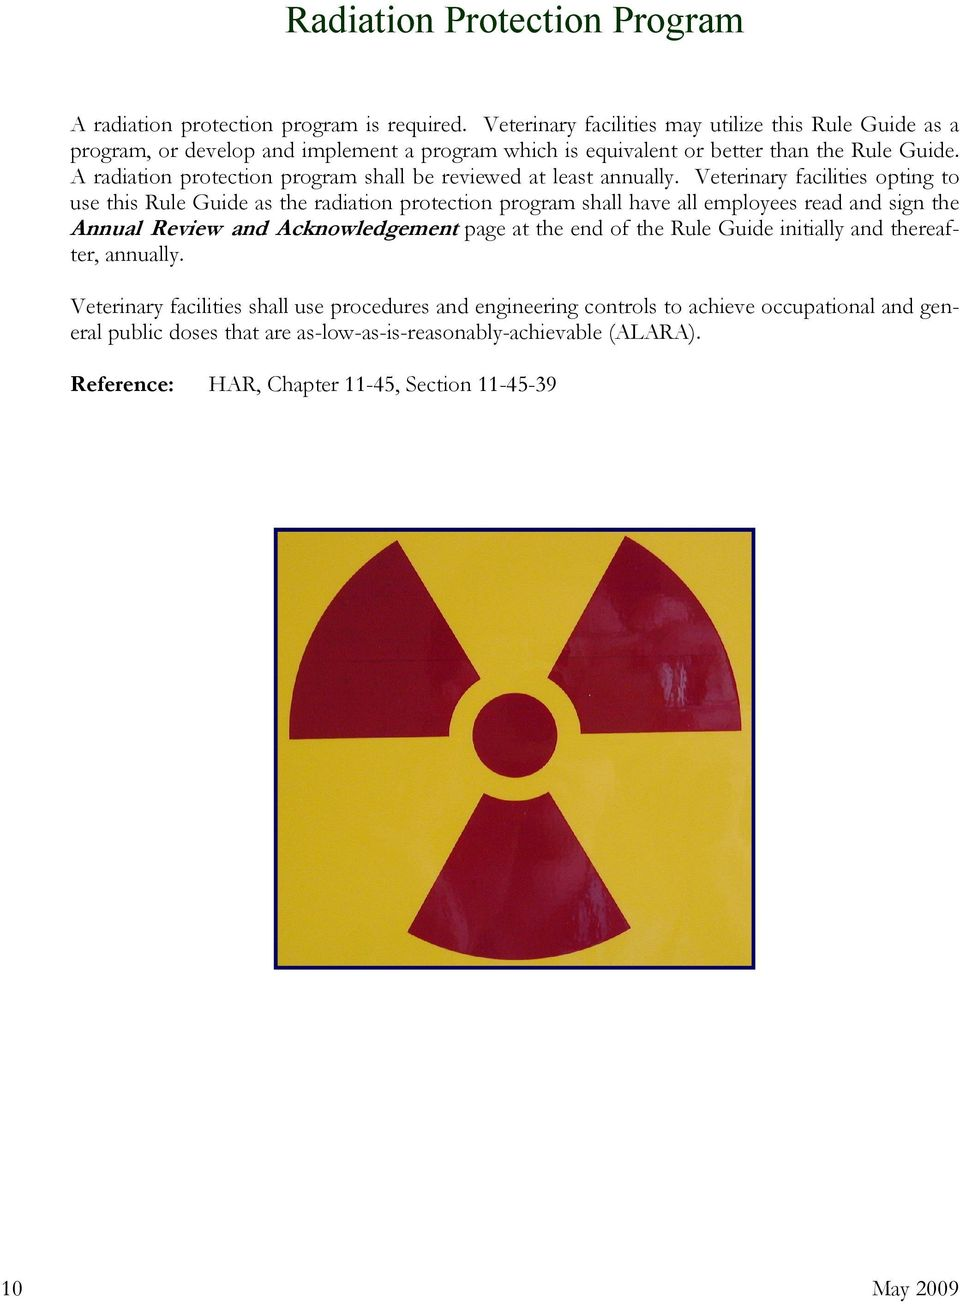 A radiation protection program shall be reviewed at least annually.